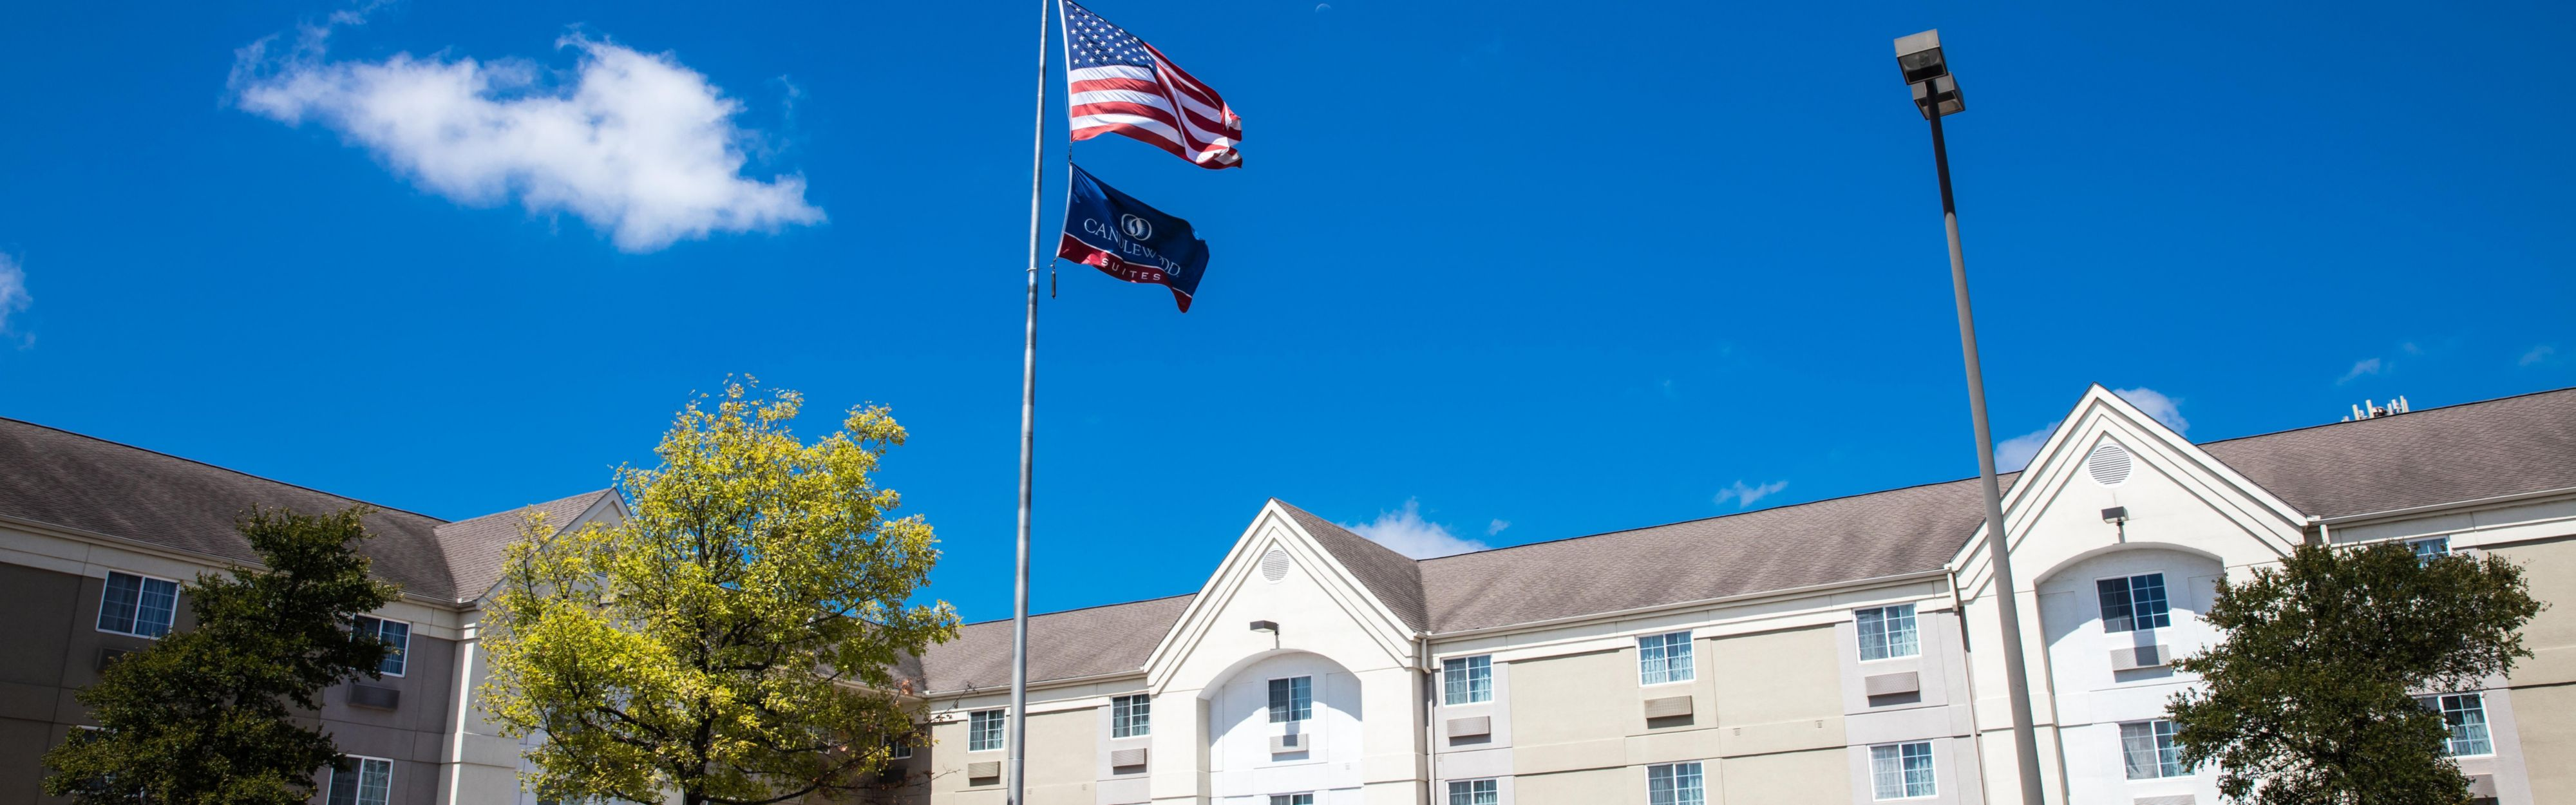 Candlewood Suites Austin-South image 0